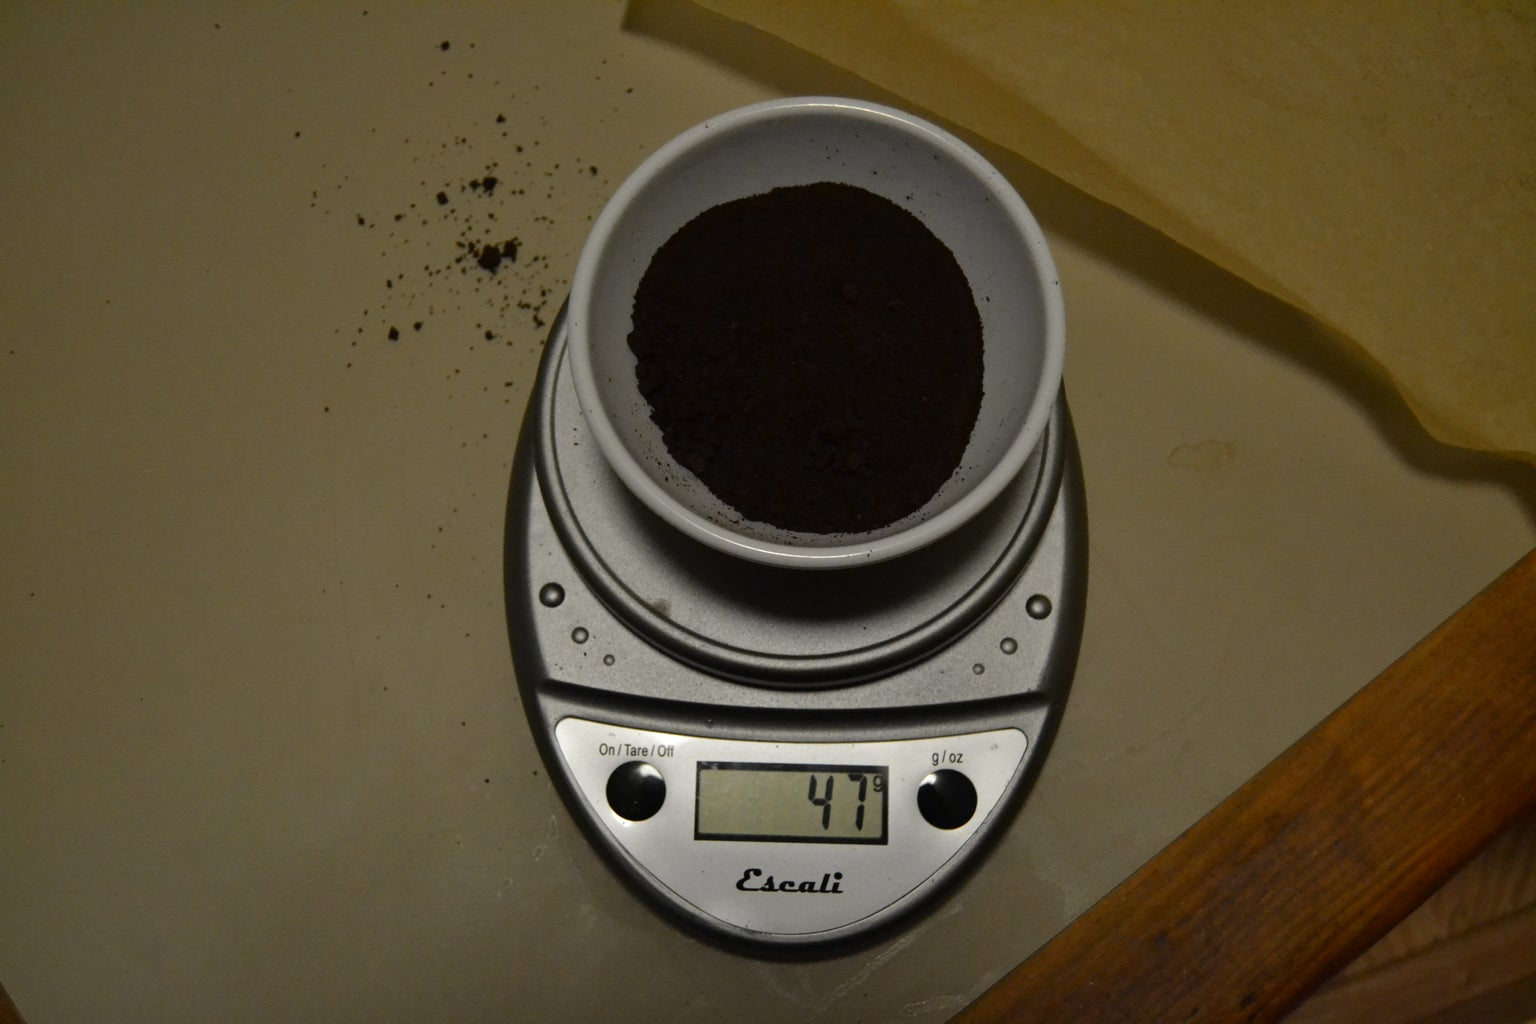 Drying the Coffee Grounds